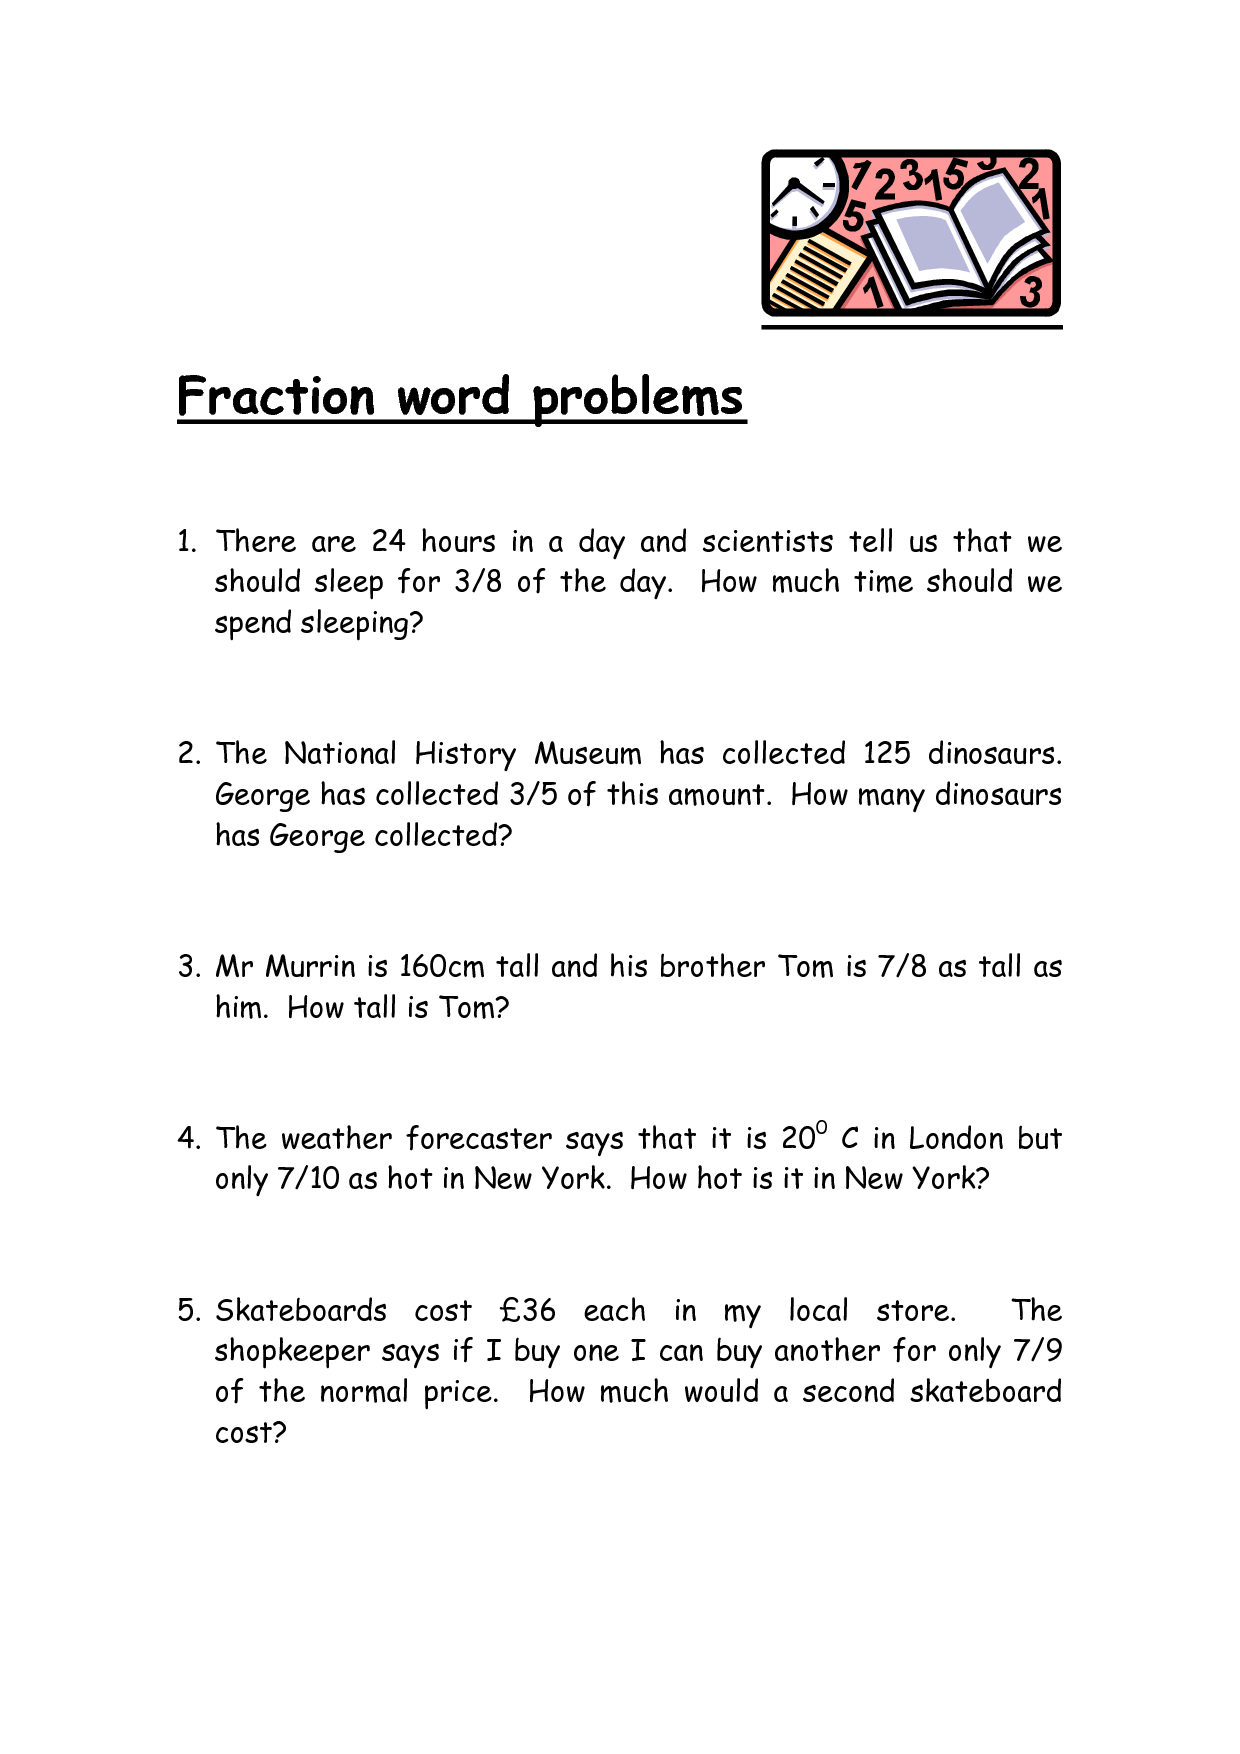 6th Grade Fraction Word Problems Worksheet